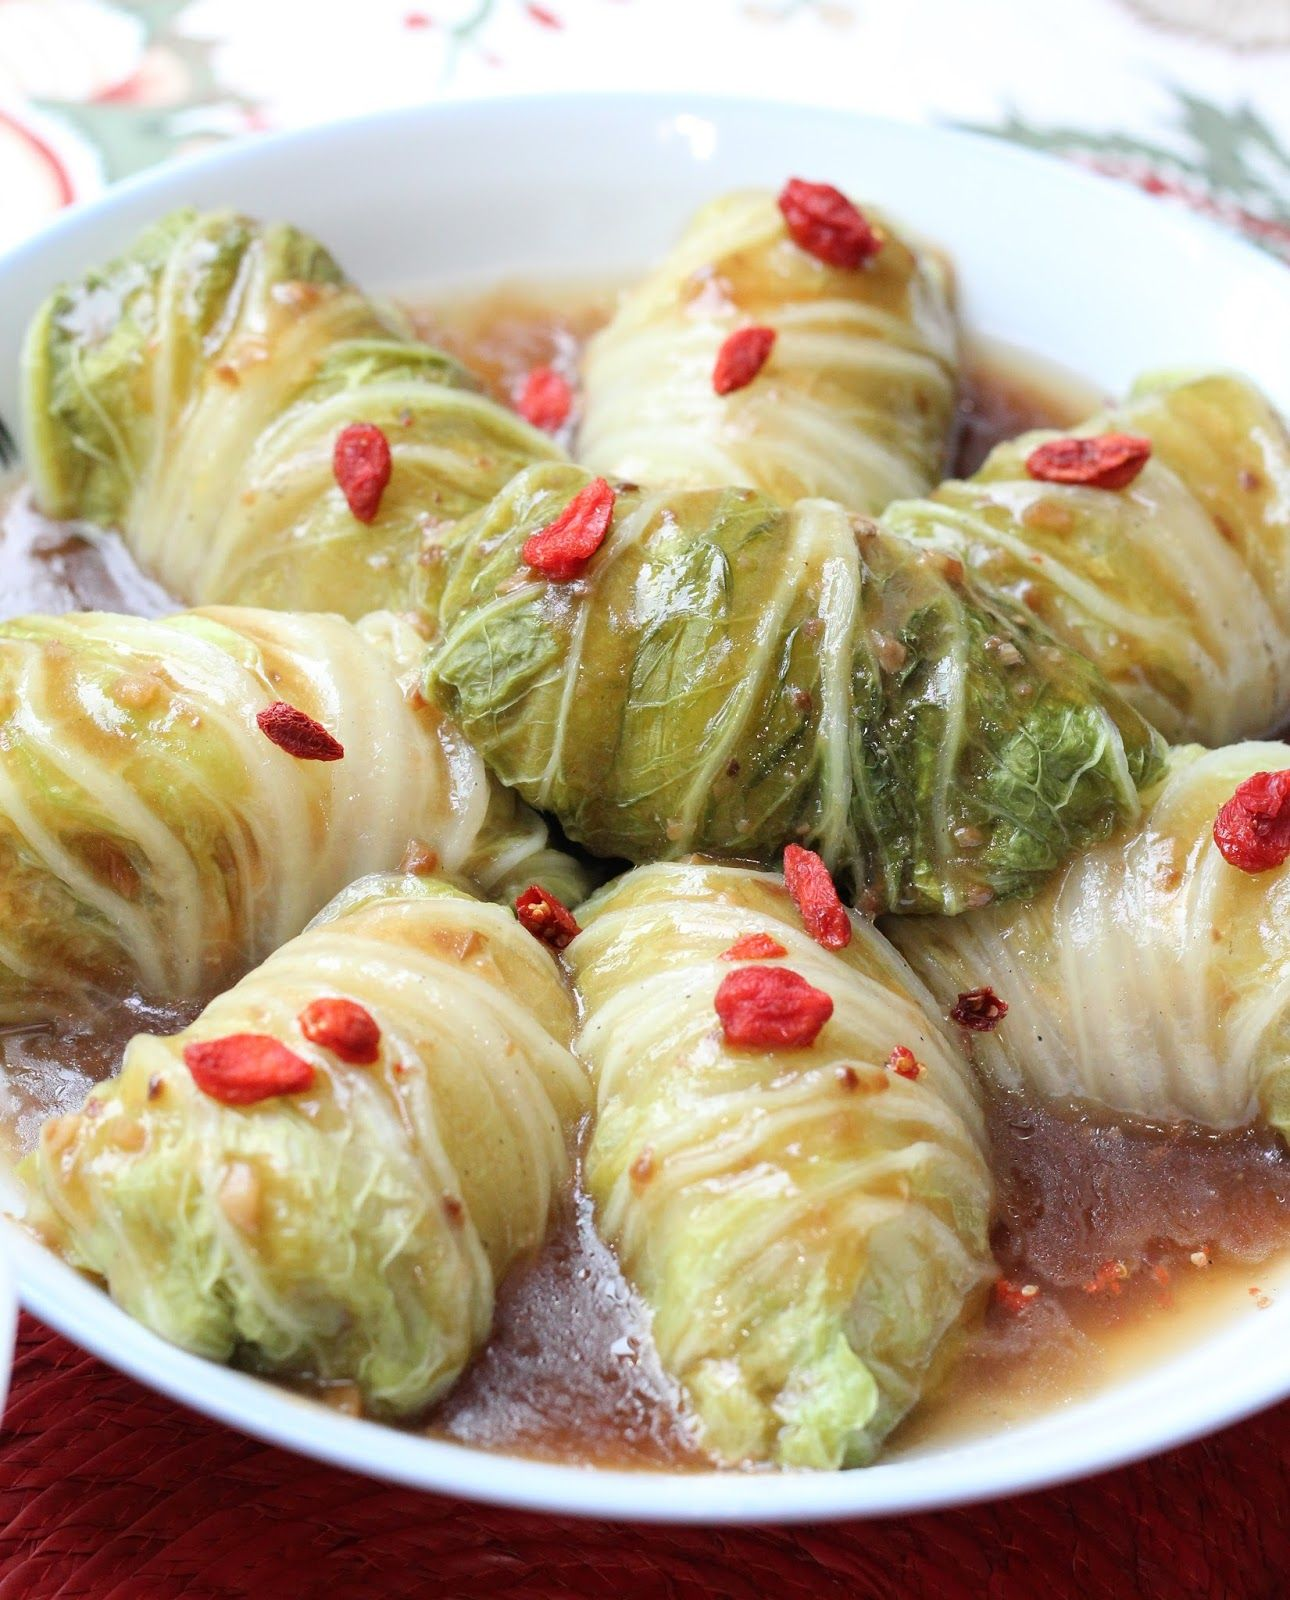 Steamed Stuffed Meat Cabbage Roll Cabbage Rolls Pork And Cabbage Steam Recipes